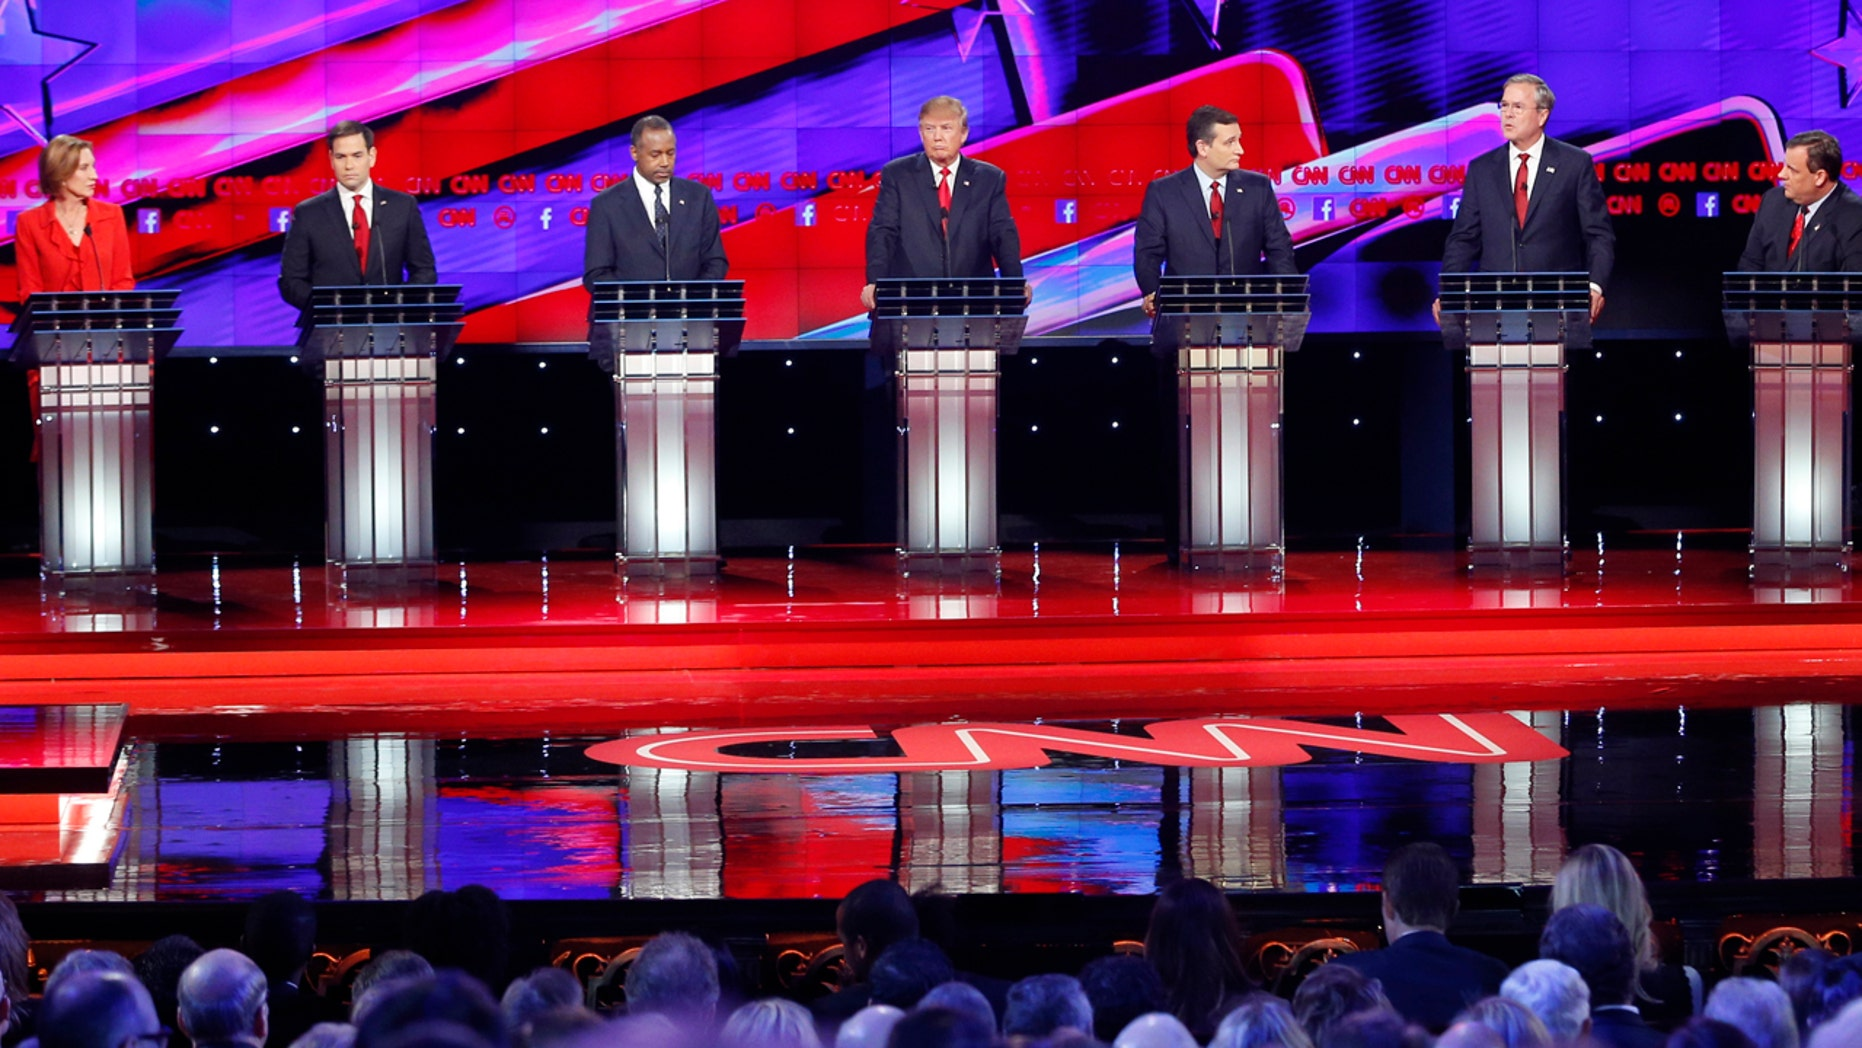 Republican presidential candidates, from left, John Kasich, Carly Fiorina, Marco Rubio, Ben Carson, Donald Trump, Ted Cruz, Jeb Bush, Chris Christie, and Rand Paul respond to debate moderator Wolf Blitzer, far left, during the CNN Republican presidential debate at the Venetian Hotel & Casino on Tuesday, Dec. 15, 2015, in Las Vegas. (AP Photo/John Locher)